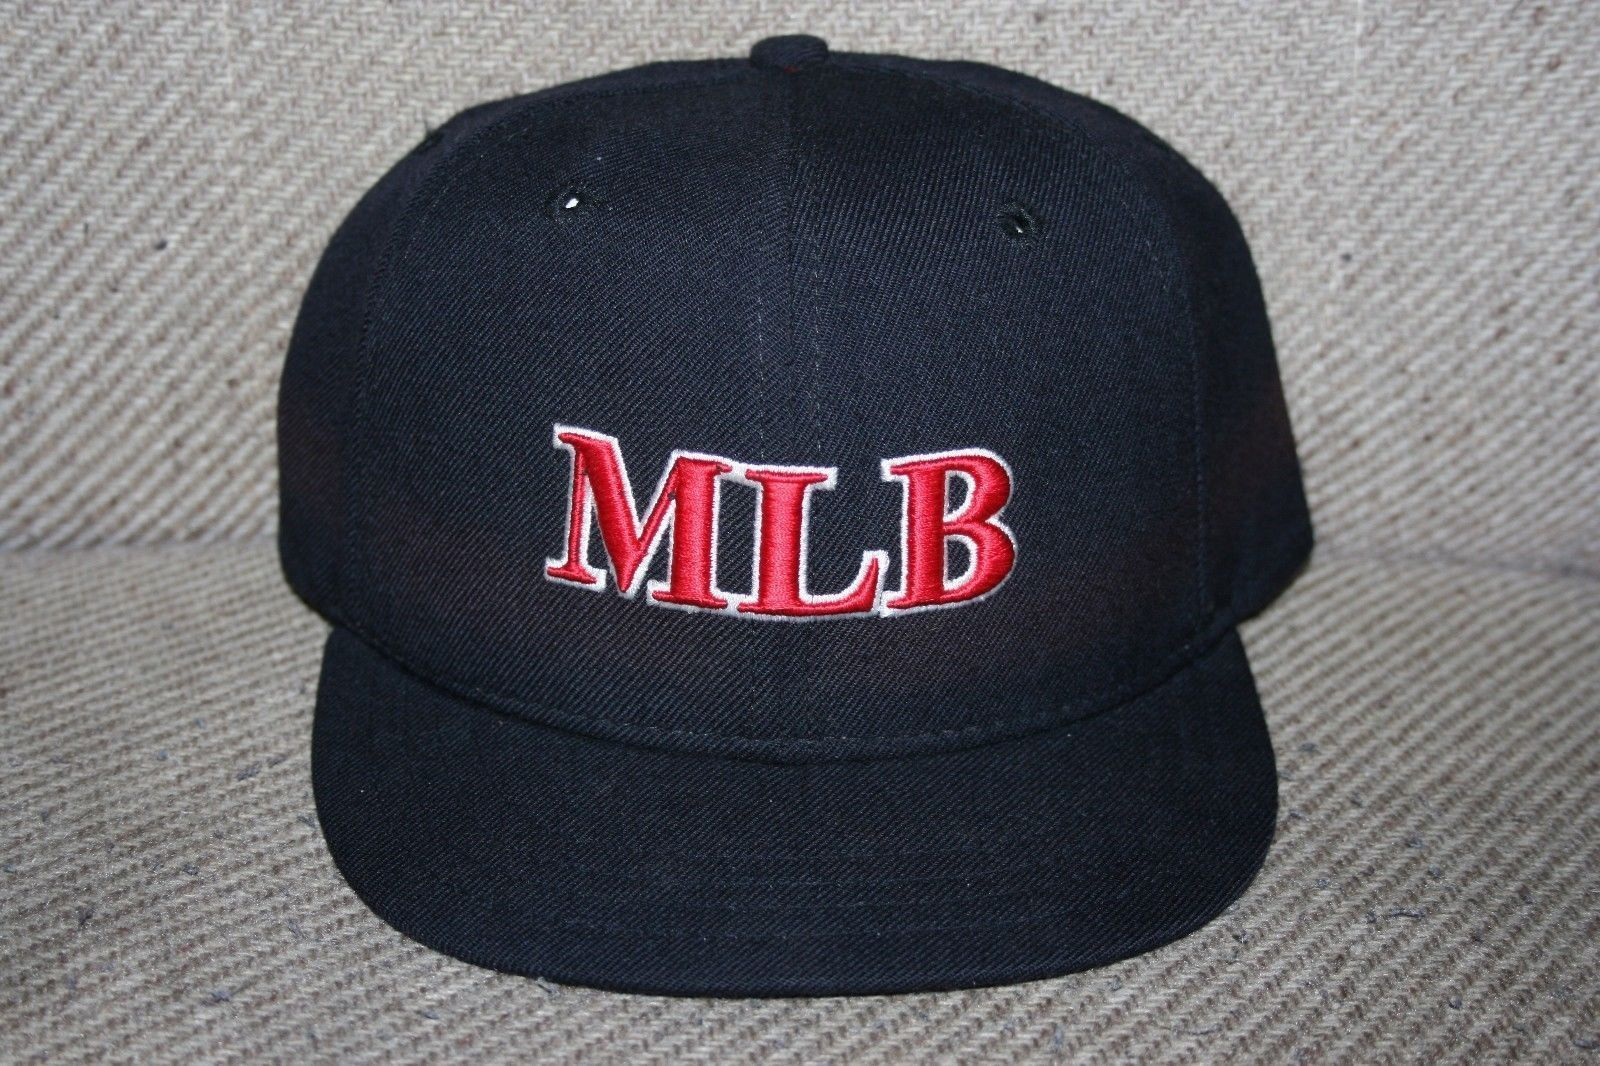 Mlb Umpire 2000 Playoffs Fitted Game Used New Era Hat Cap Rare New Era Hats Baseball Hats Stuff To Buy